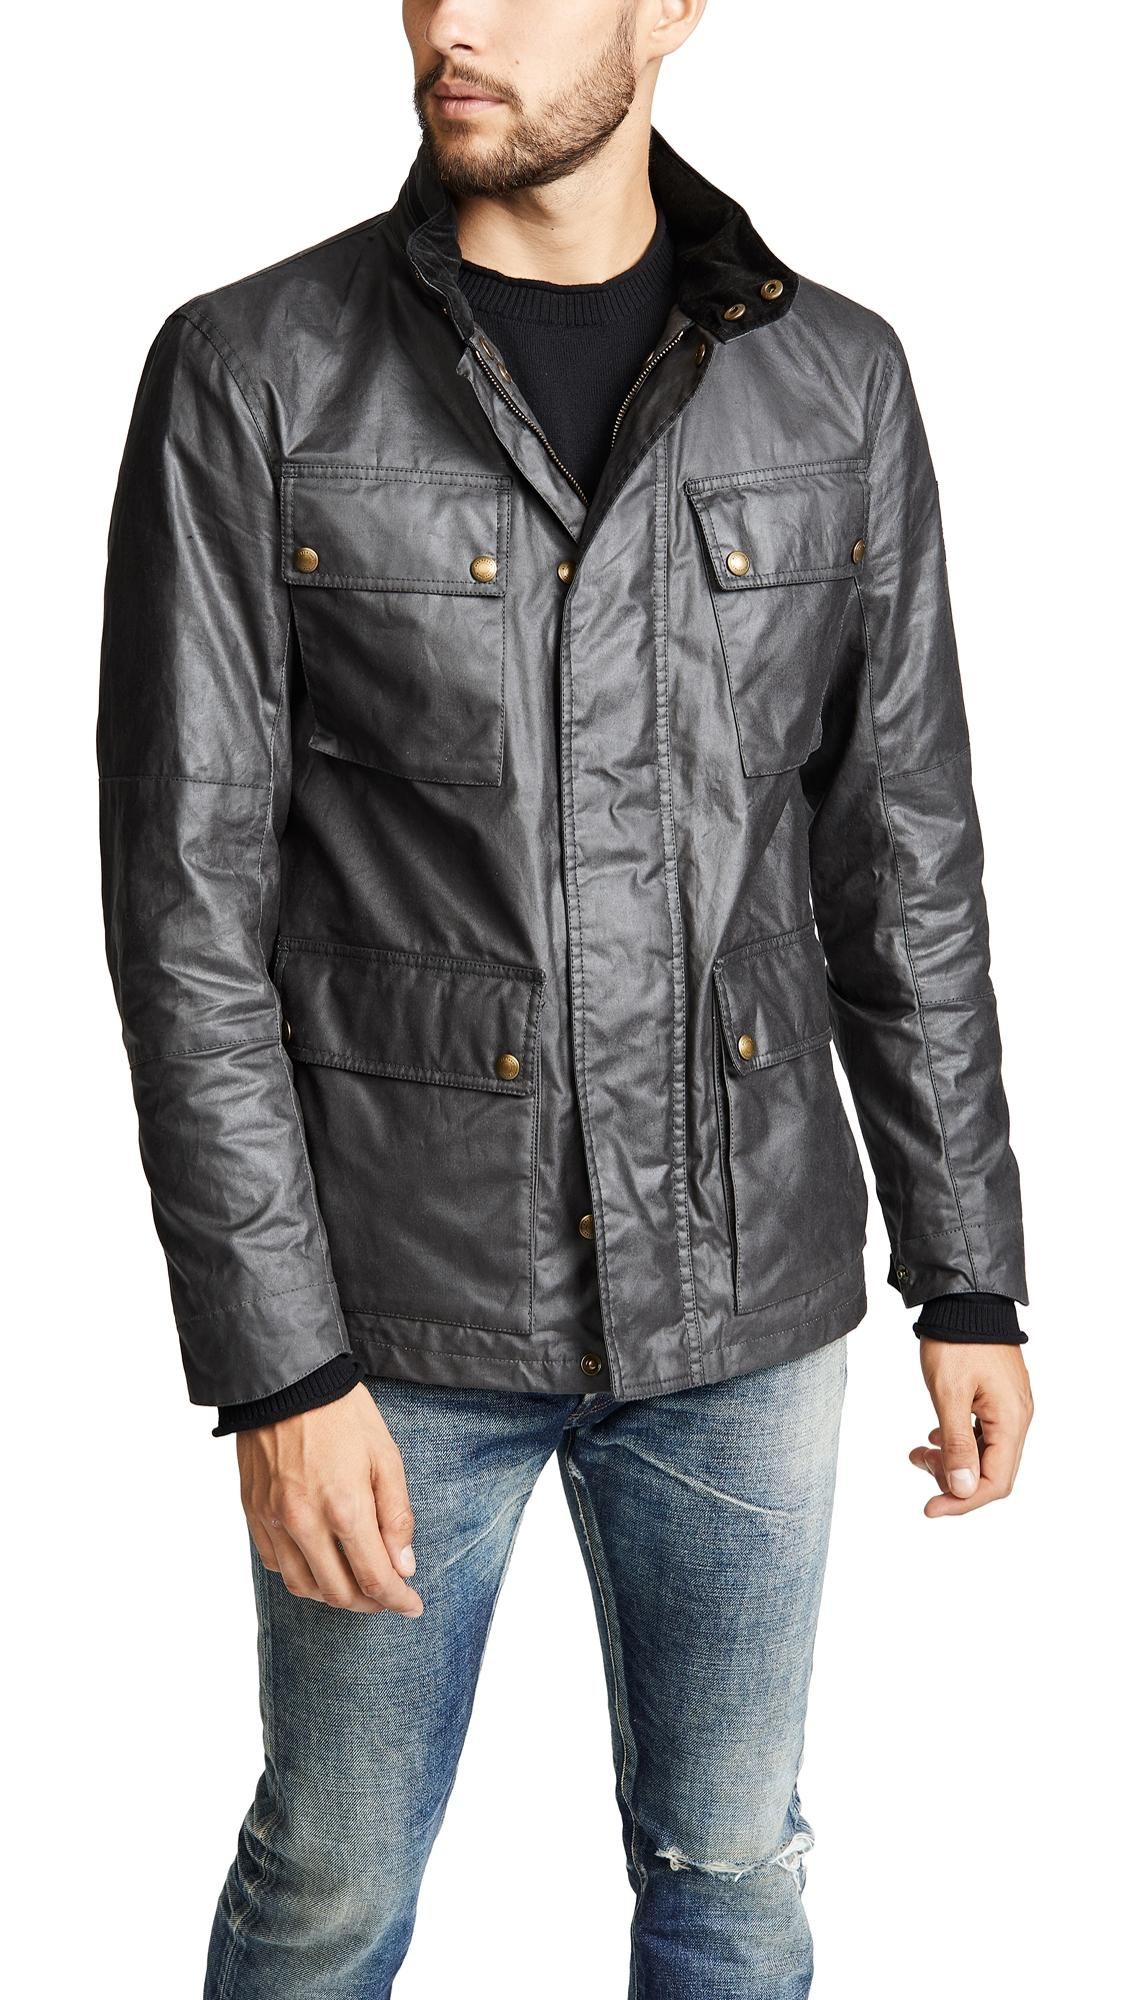 0c2707d1bea8 Belstaff Explorer Jacket In Winward Grey